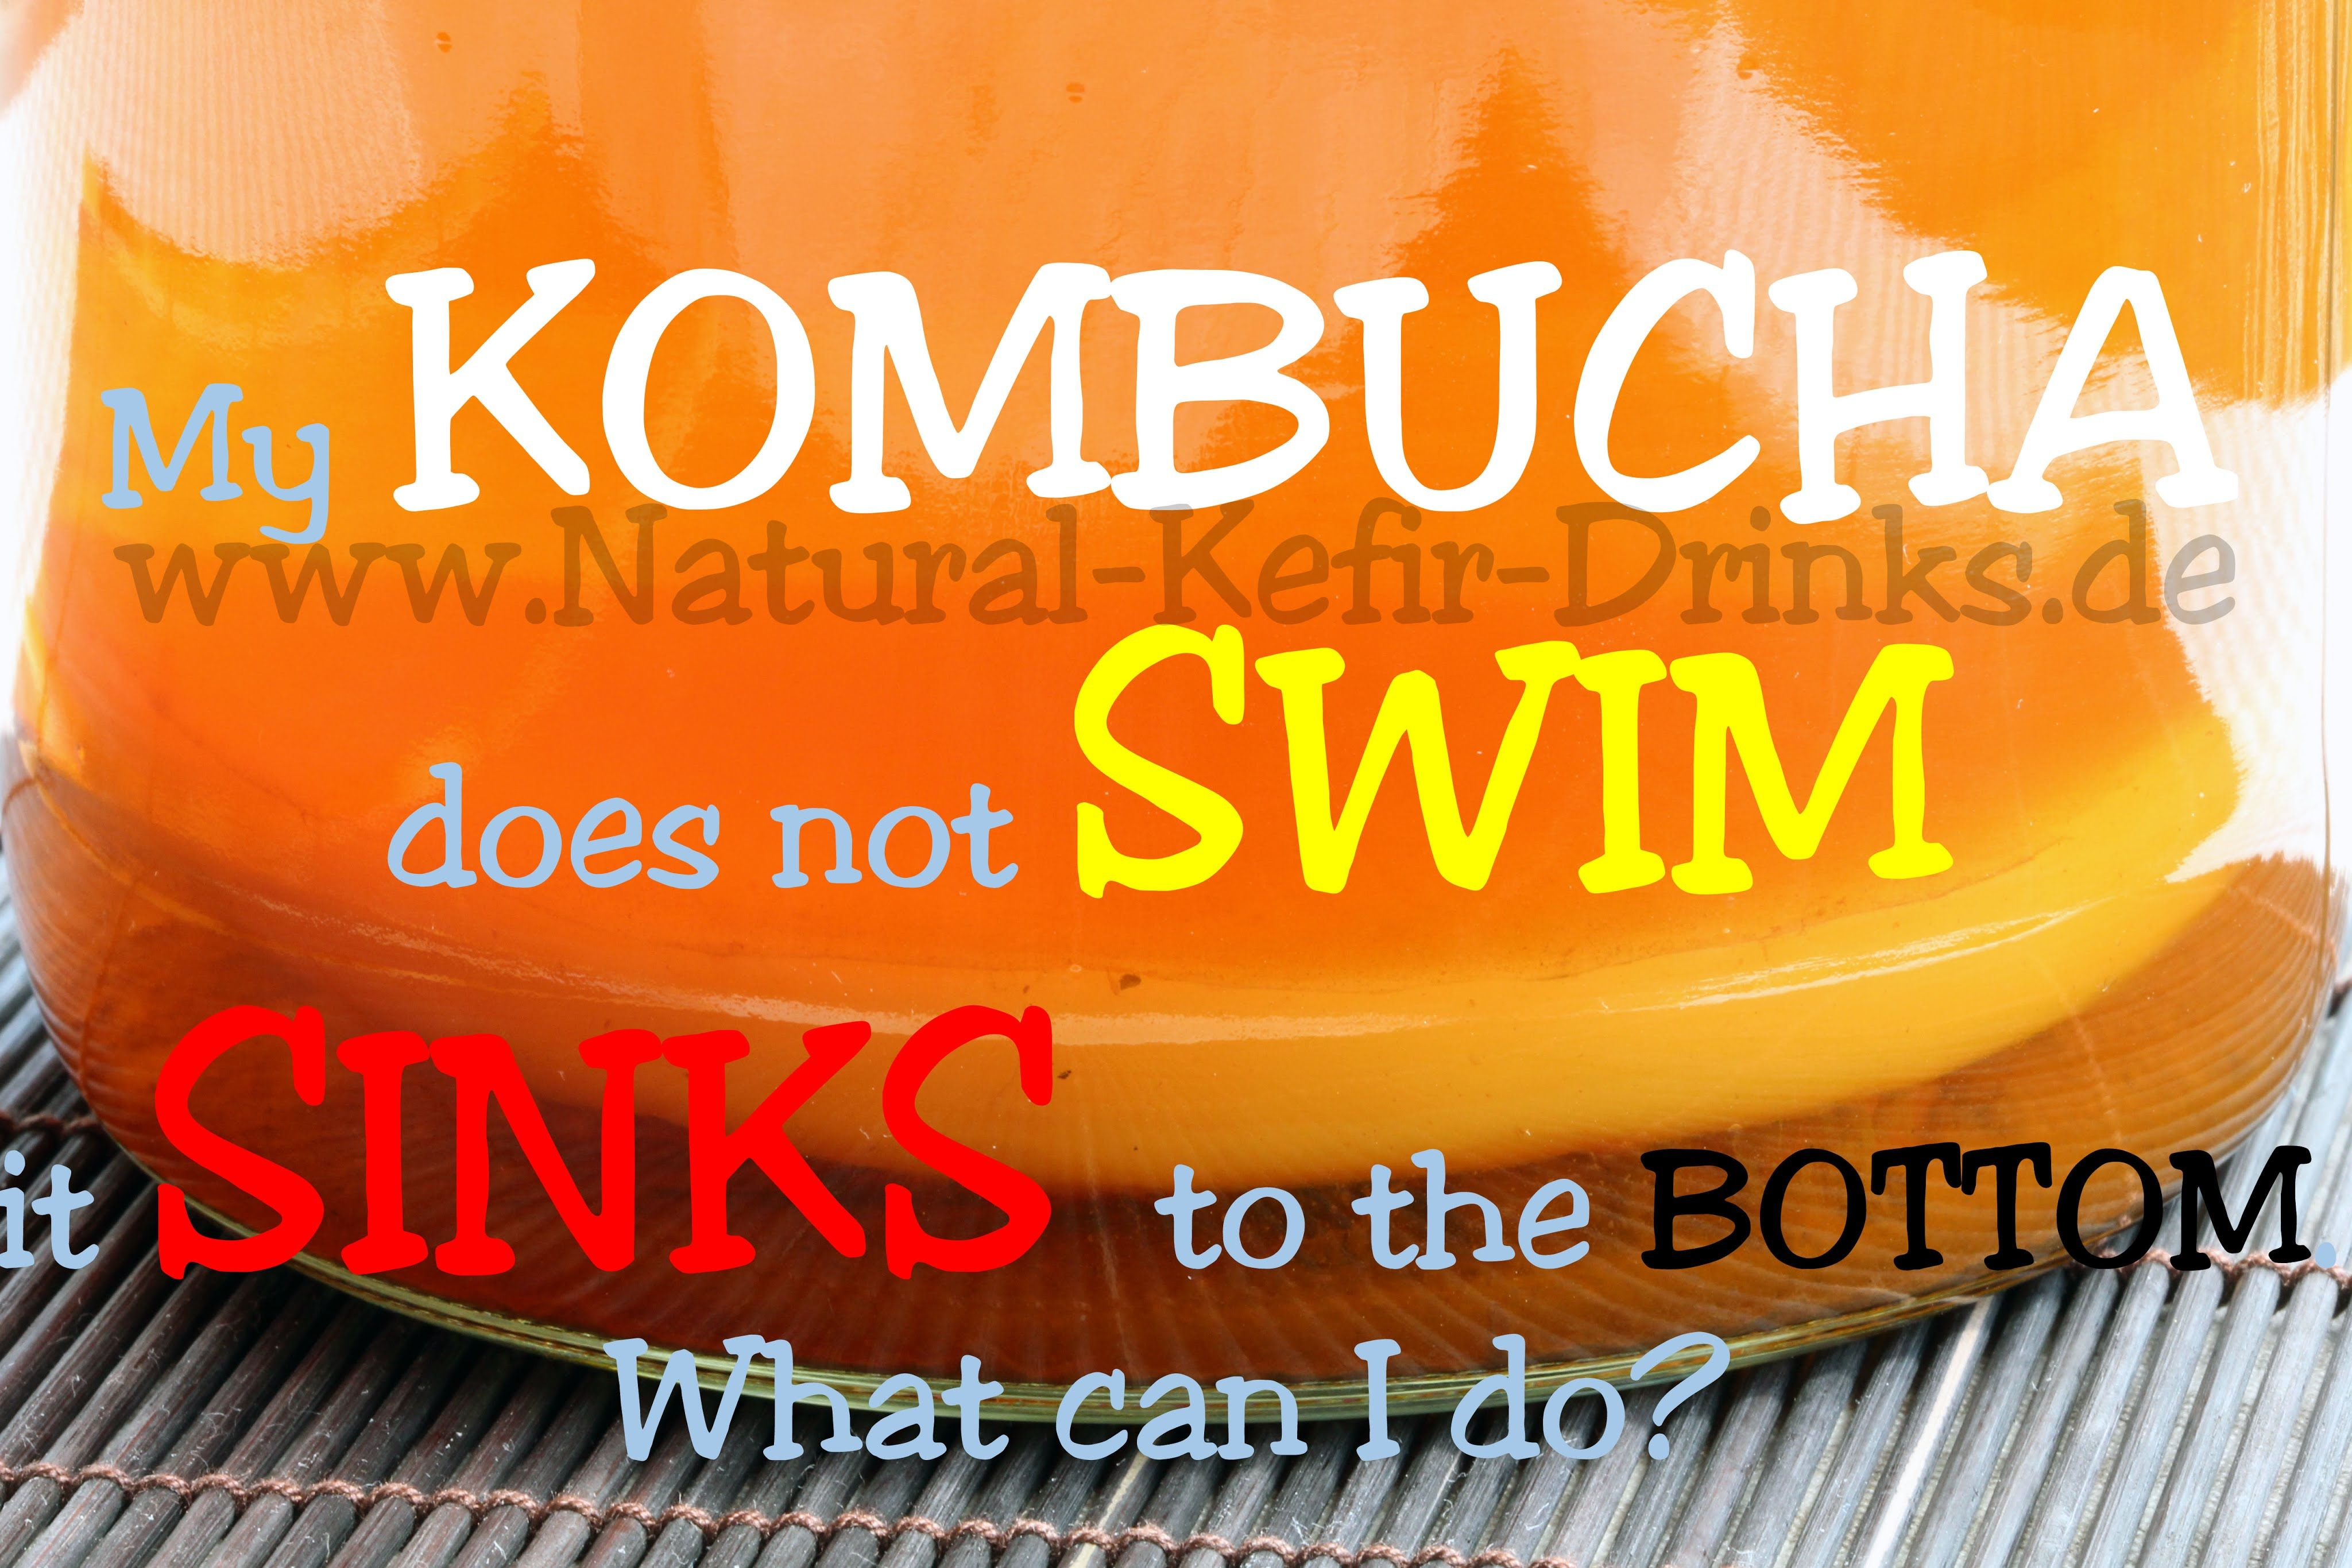 My kombucha scoby doesn't swim on the surface of the batch - it sinks. I...